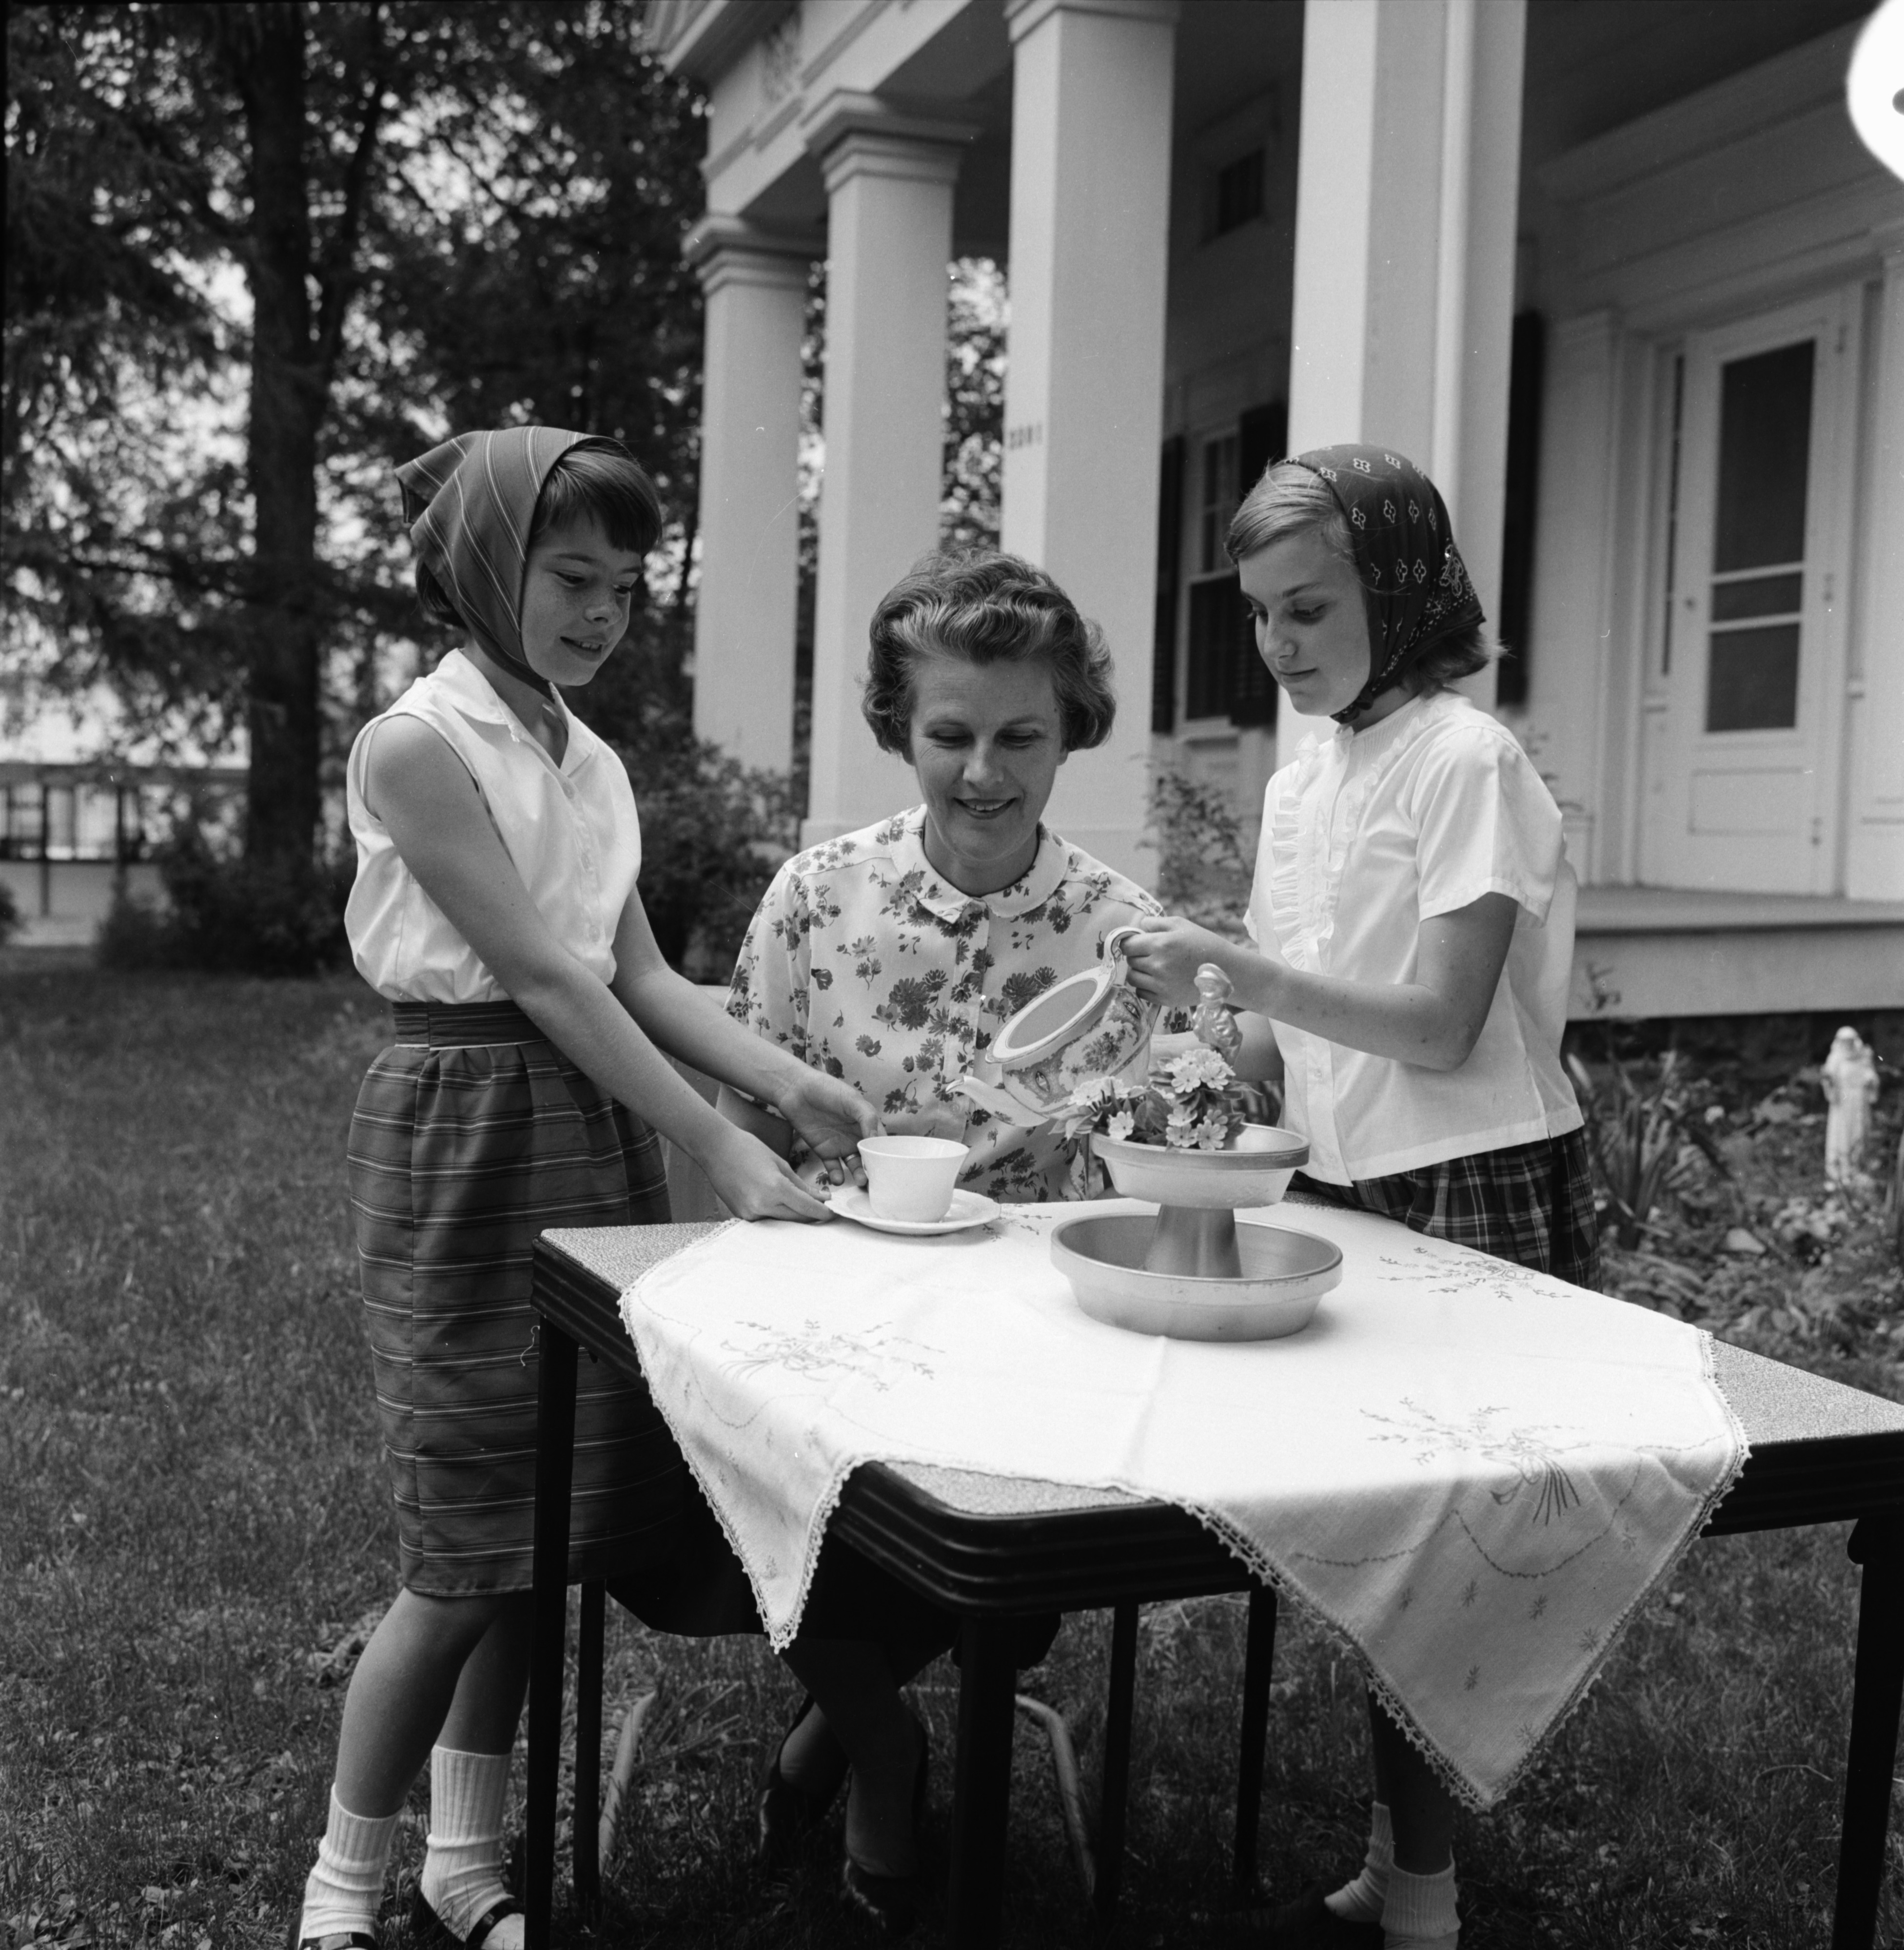 Afternoon Tea at St. Clare's Episcopal Mission, June 1964 image